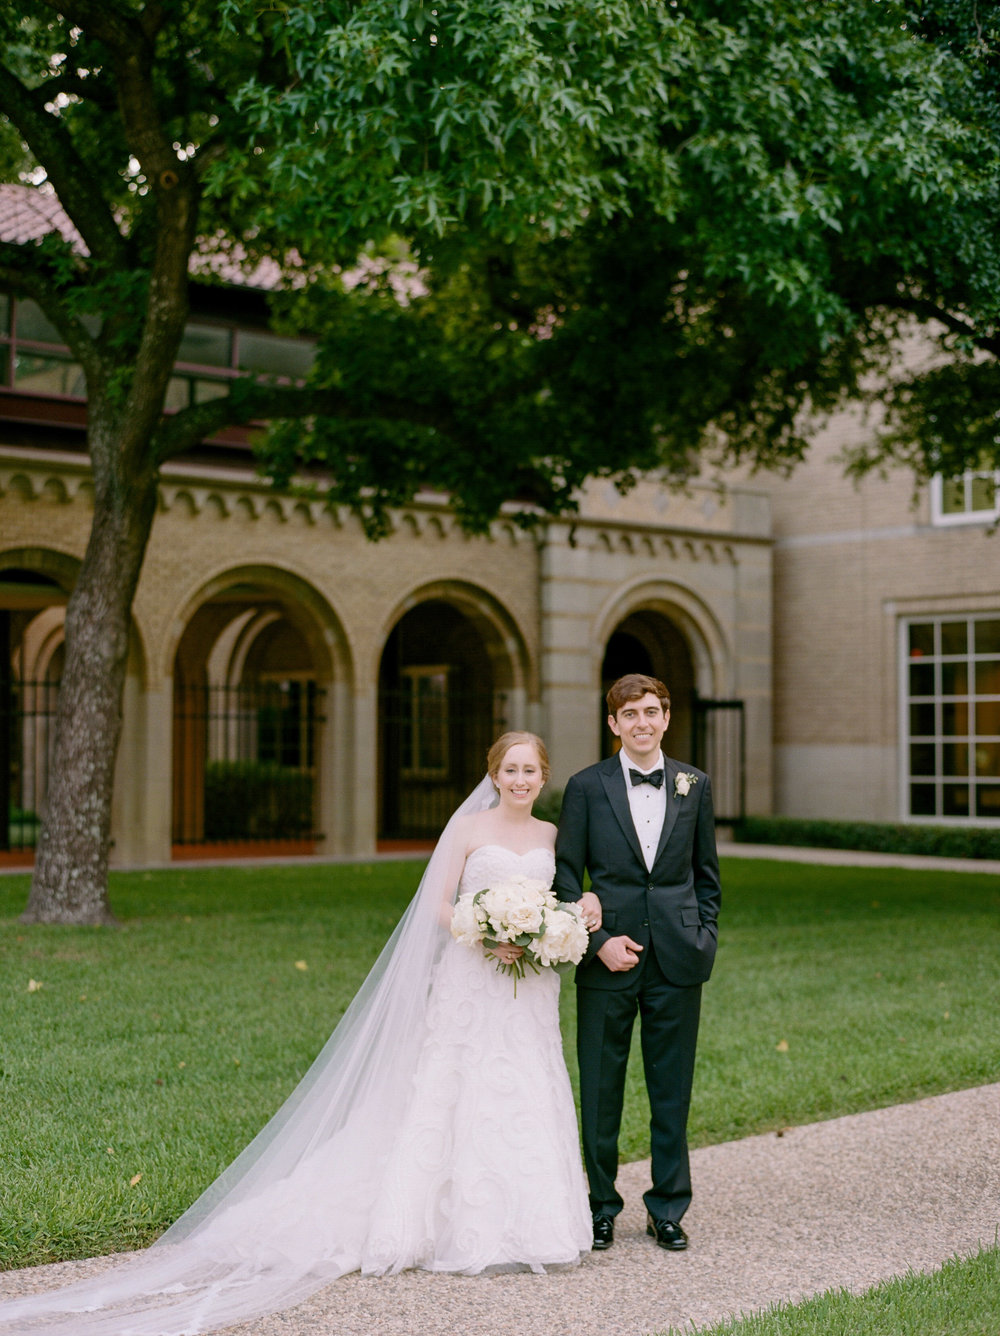 Fine-Art-Film-Houston-Wedding-Photographer-Best-Top-Luxury-Texas-Austin-Dallas-Destination-Dana-Fernandez-Photography-River-Oaks-Country-Club-South-Main-Baptist-Ceremony-Reception-Wedding-31.jpg